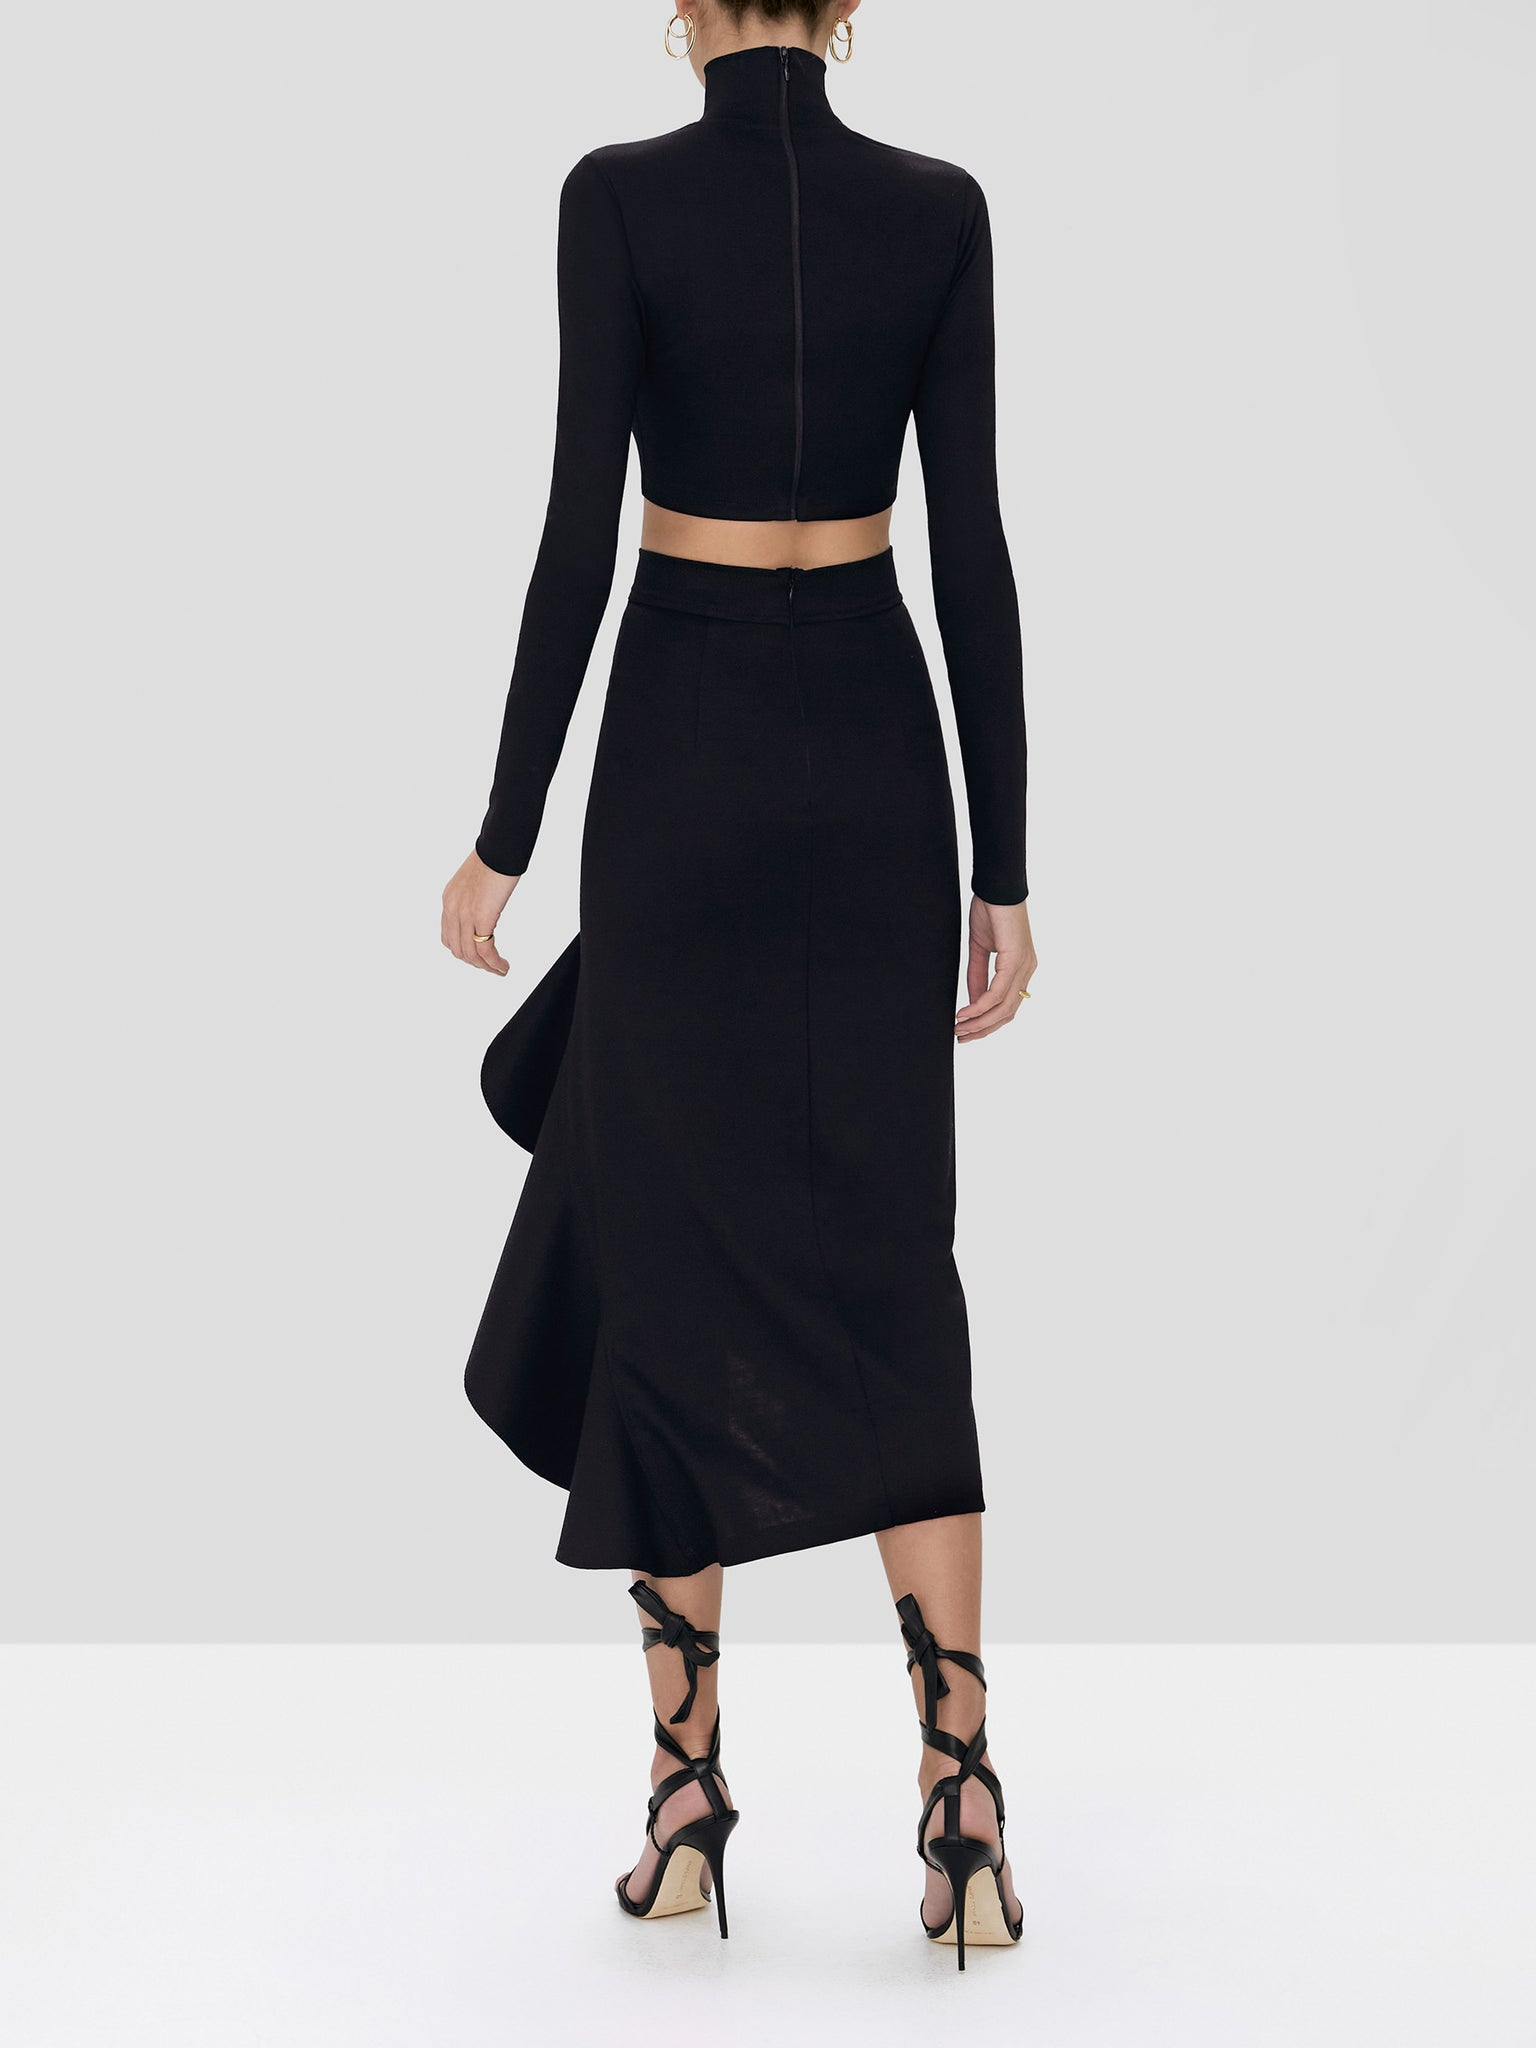 bani skirt in black - Rear View